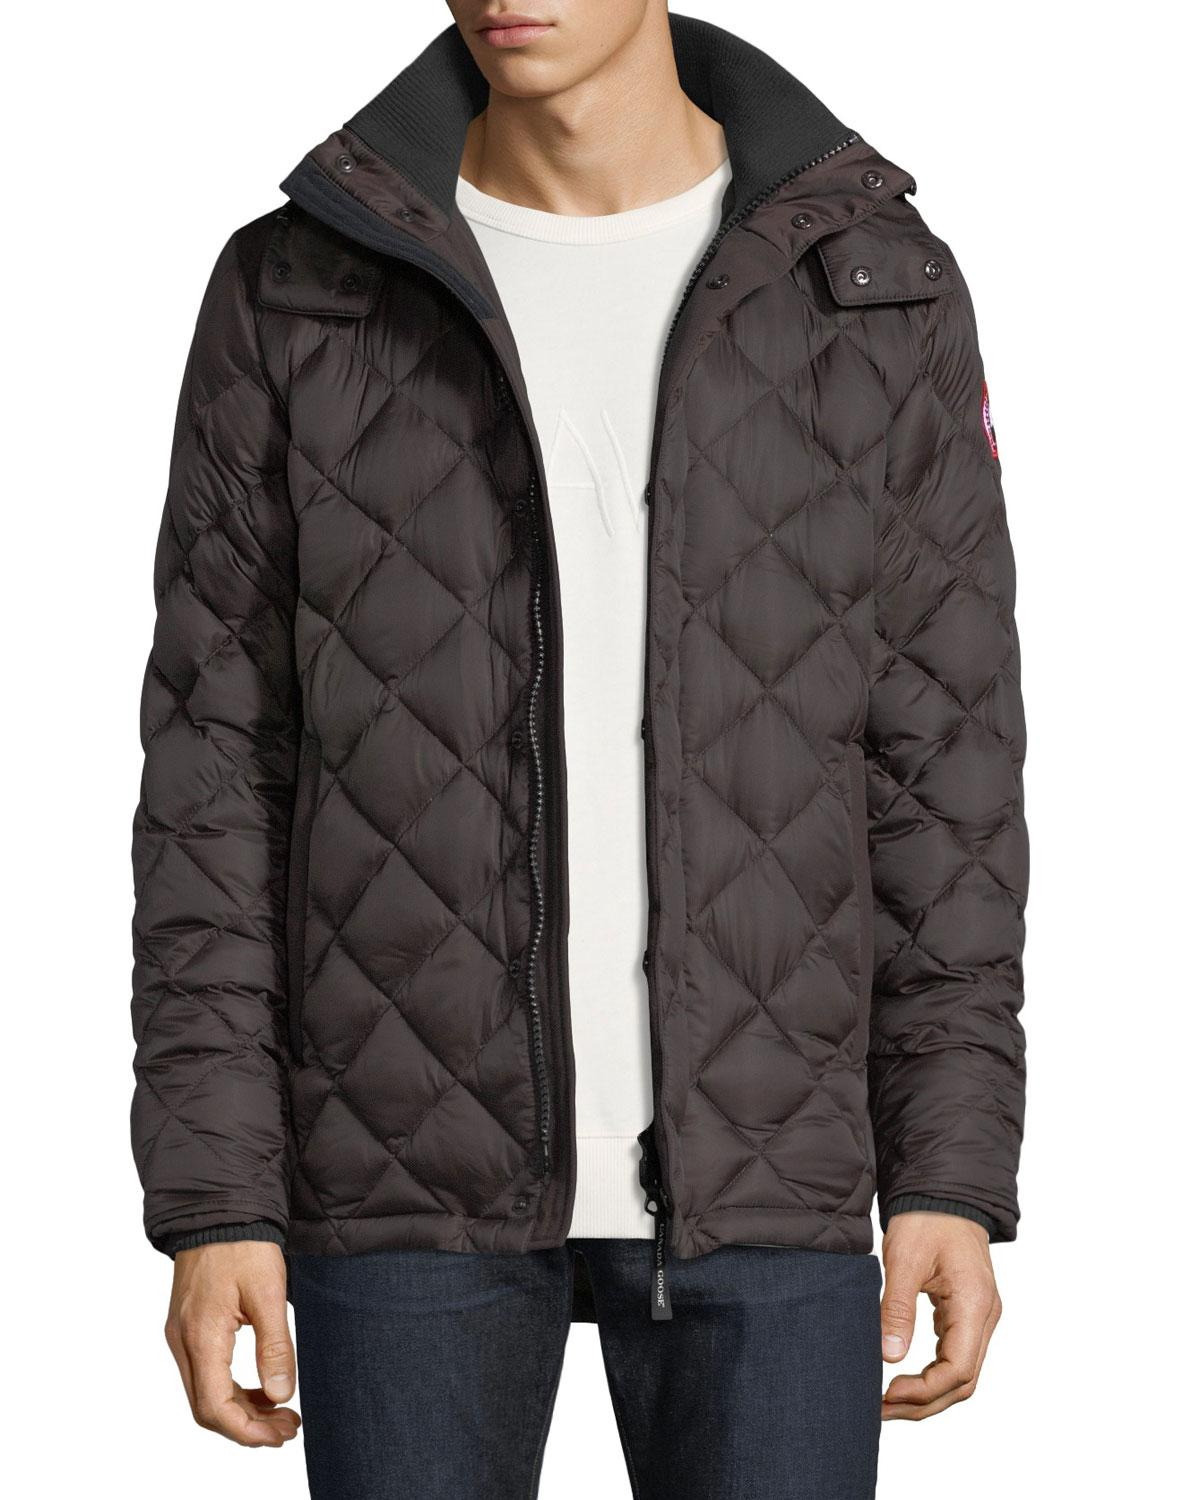 4ec5a834f80 Lyst - Canada Goose Hendriksen Diamond-quilted Coat in Black for Men